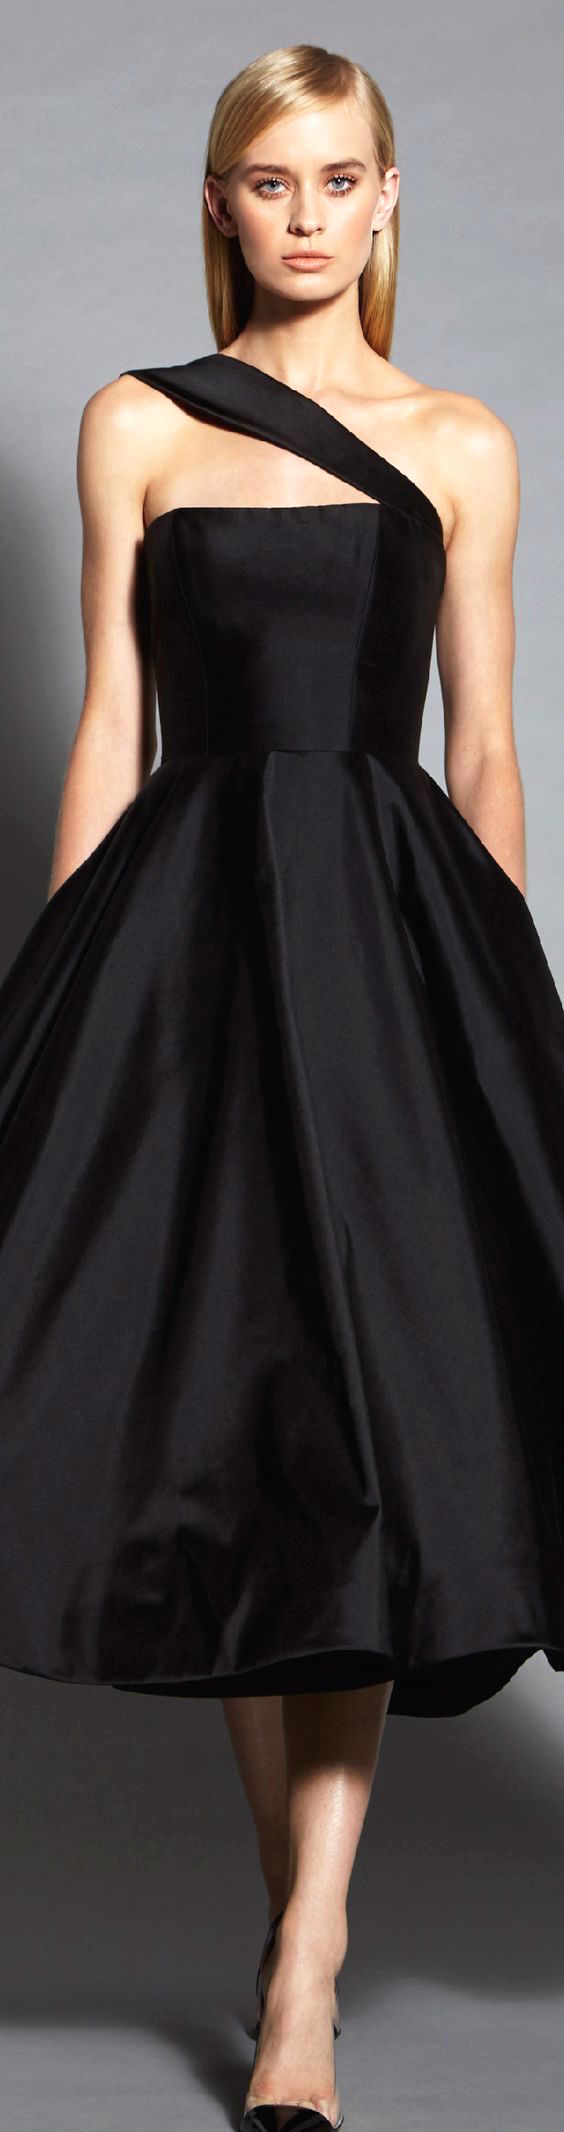 Chic and Elegant Cocktail Dresses for Weddings: Latest Styles ...